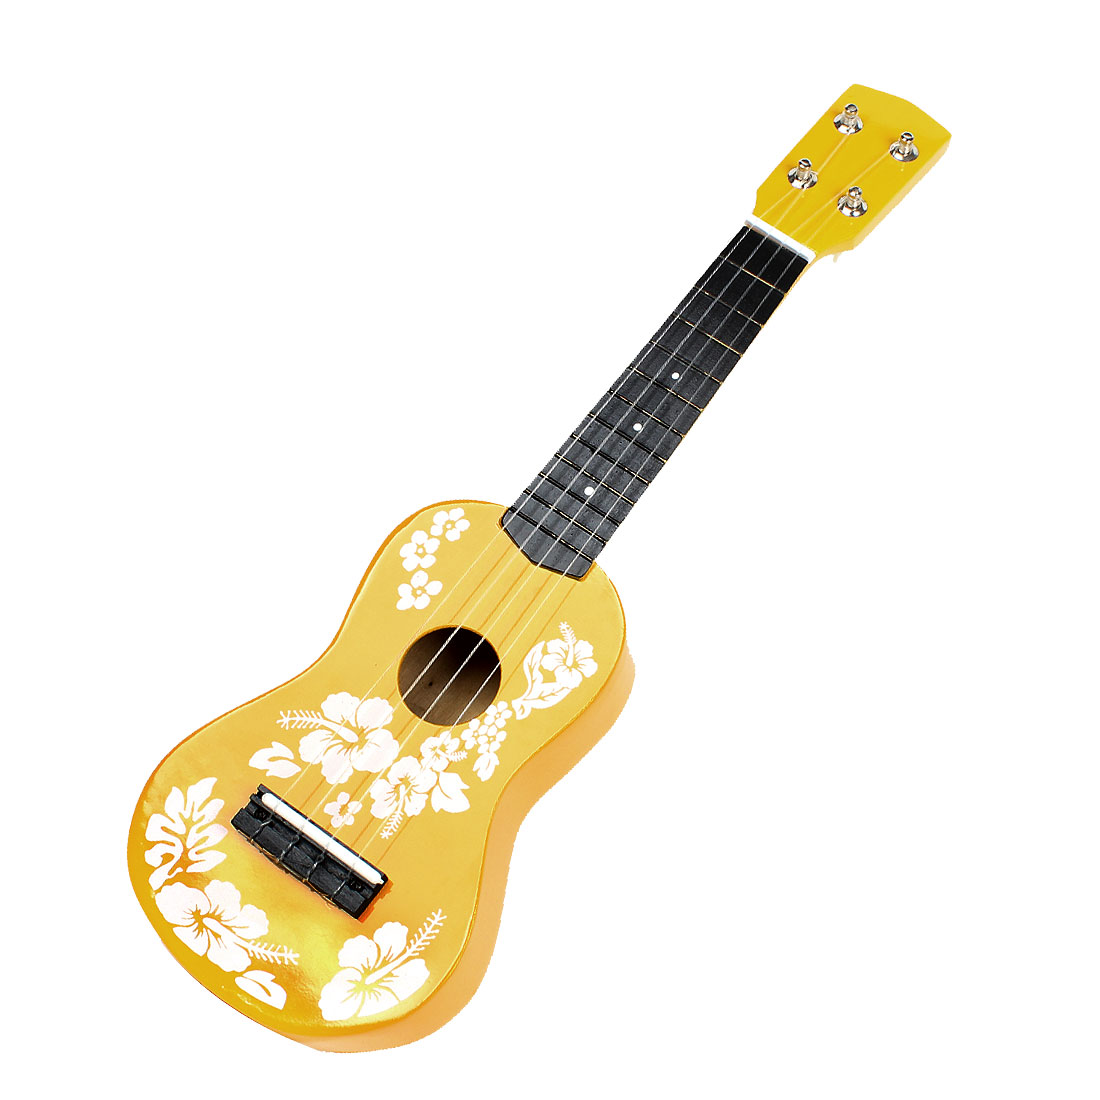 Child Plastic Strings Flowers Pattern Wooden Acoustic Guitar Ukulele Toy Yellow White